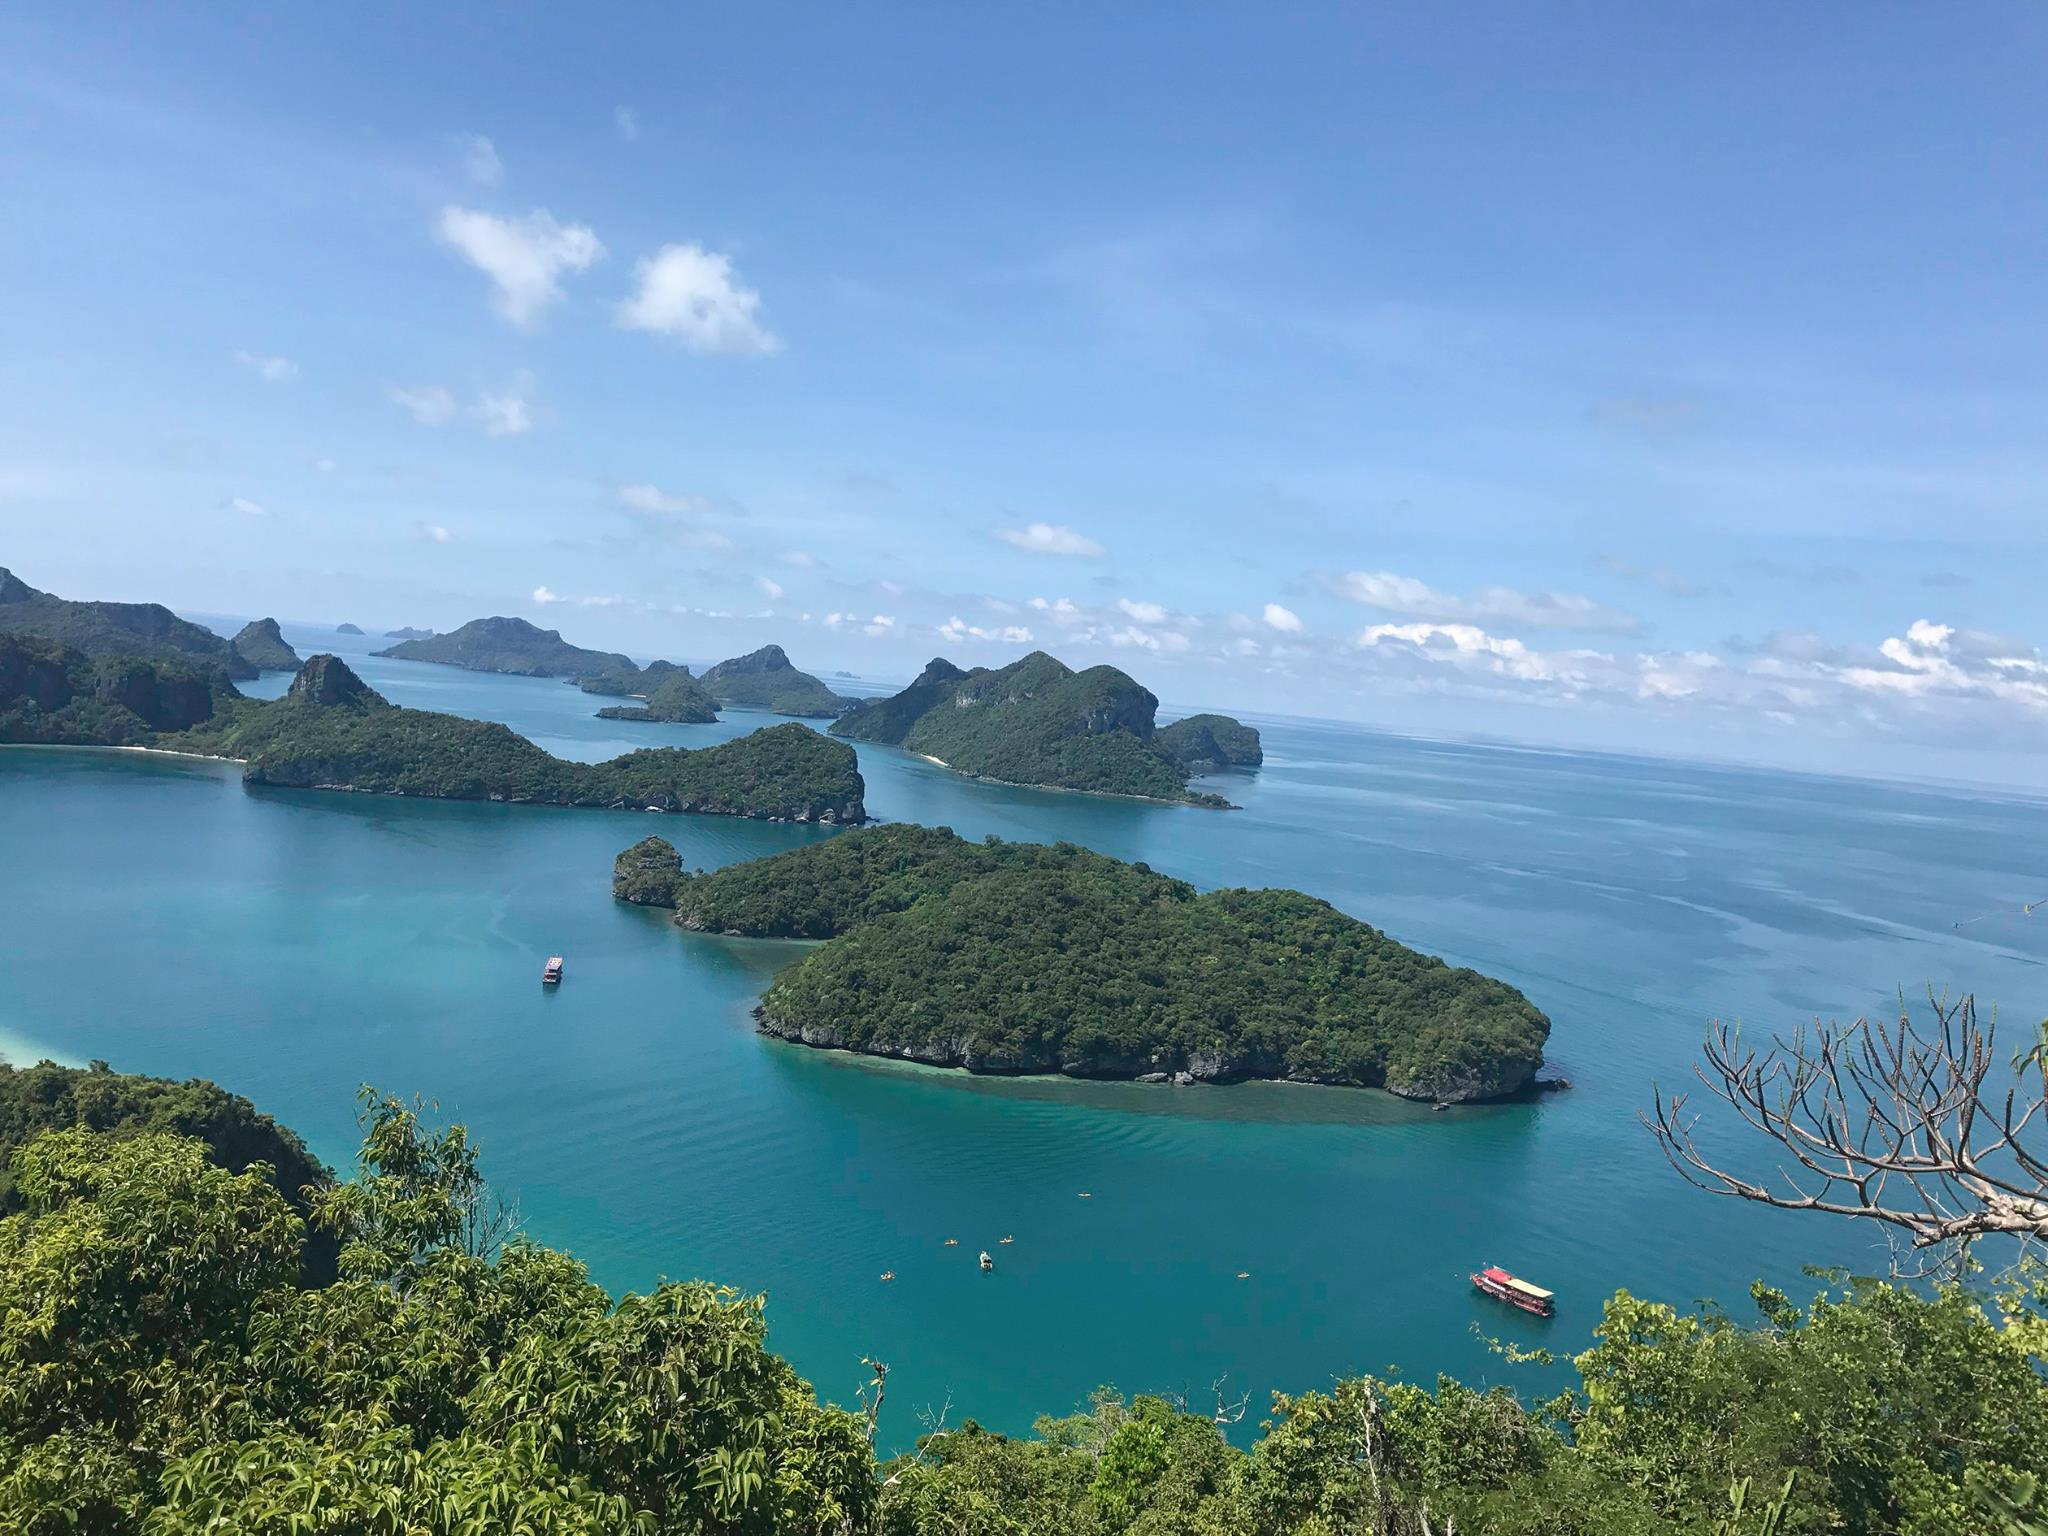 The 42 islands of the Angthong Marine National Park